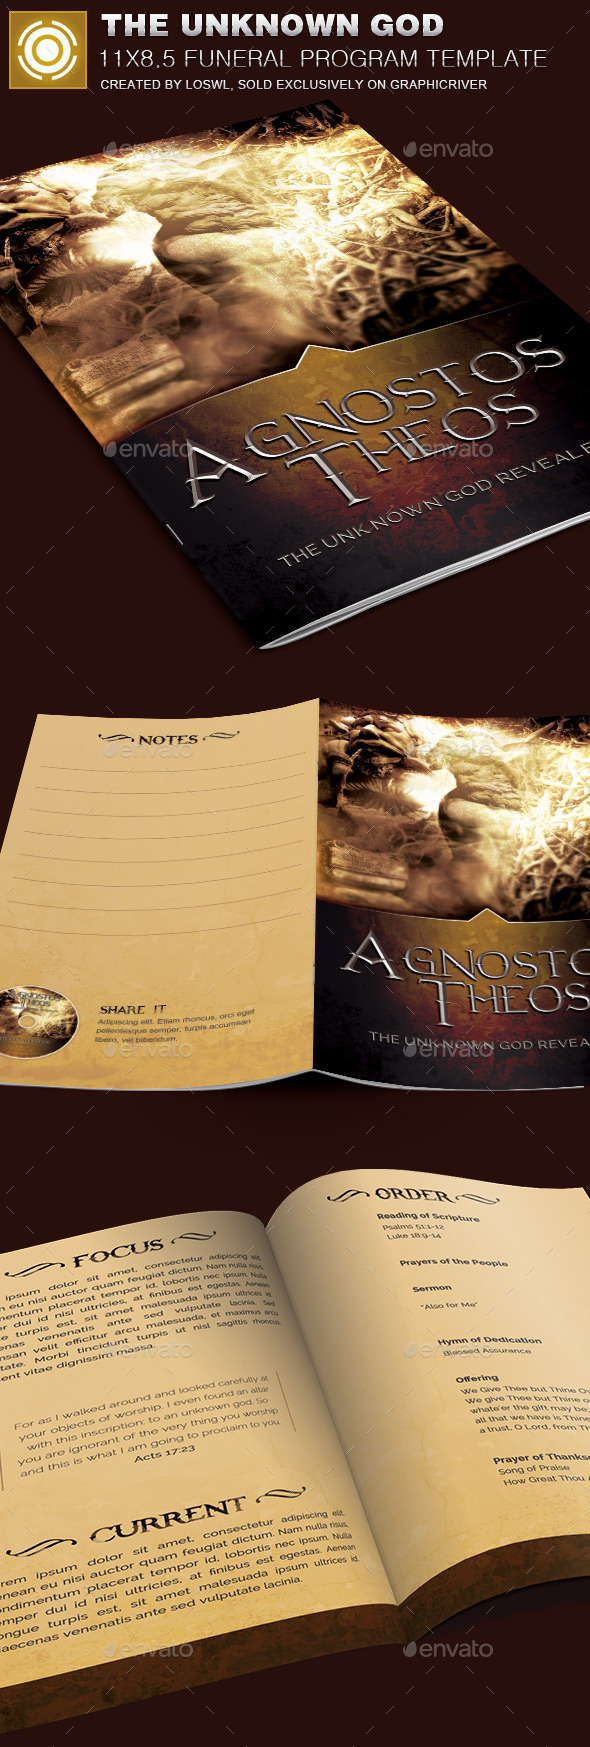 The Unknown God Church Bulletin Template